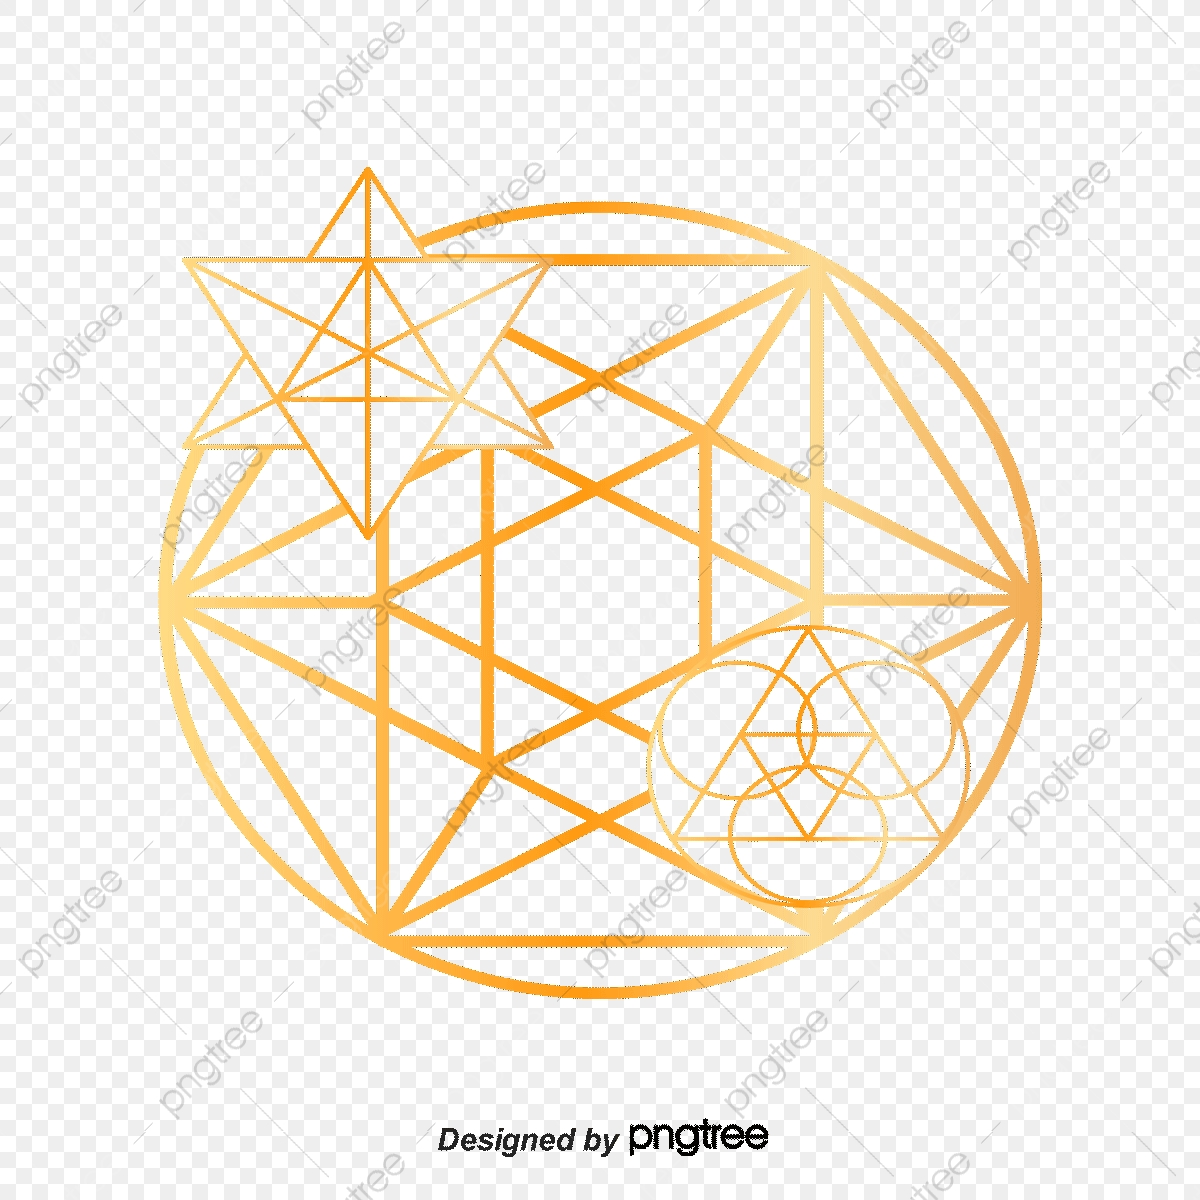 Astrology Symbol Vector Material, Grain, Decoration, Vector PNG and.